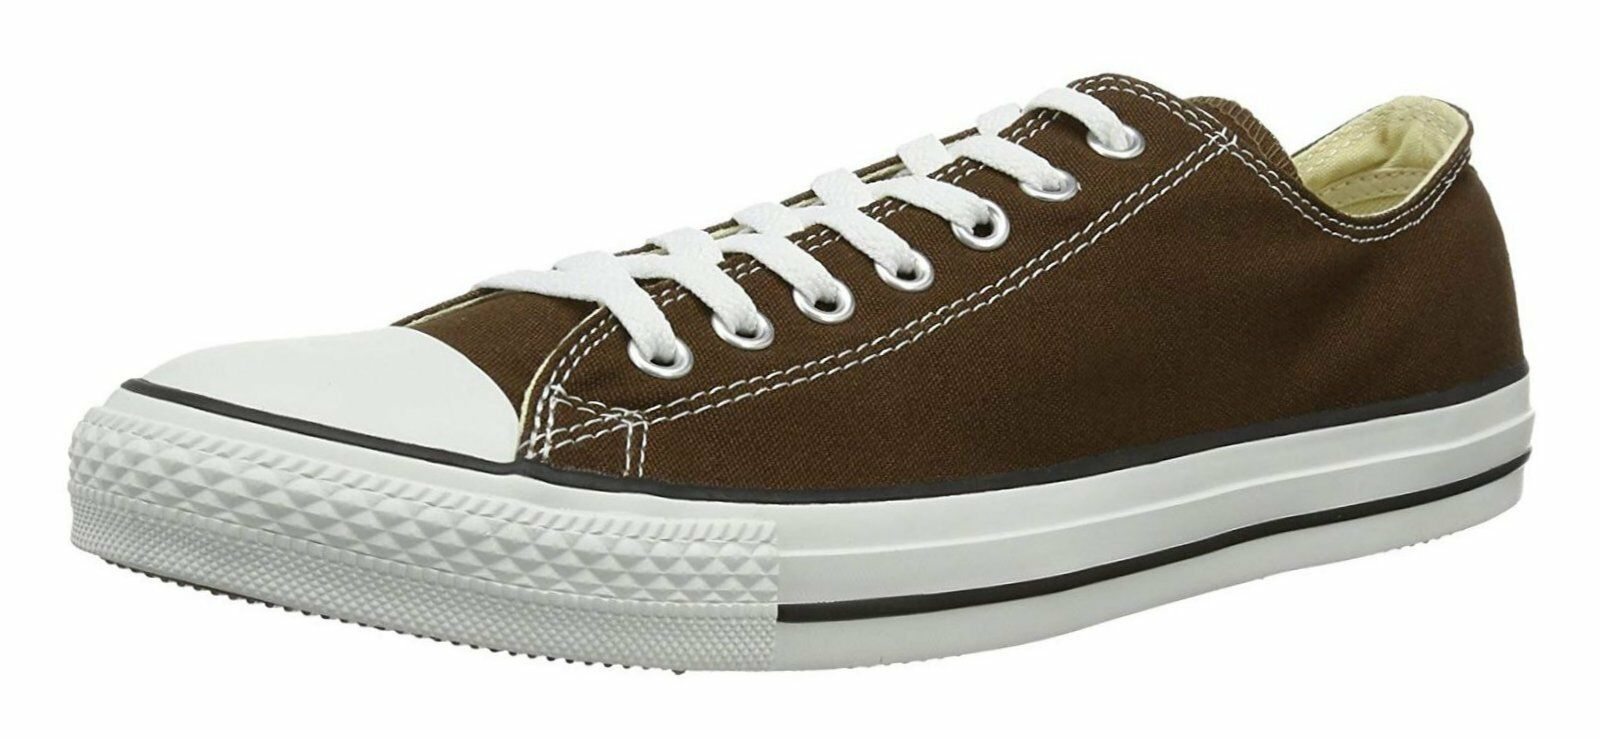 b9027d0108be56 Converse All Star Chuck Taylor Ct as Oxford Chocolate Canvas Shoes ...